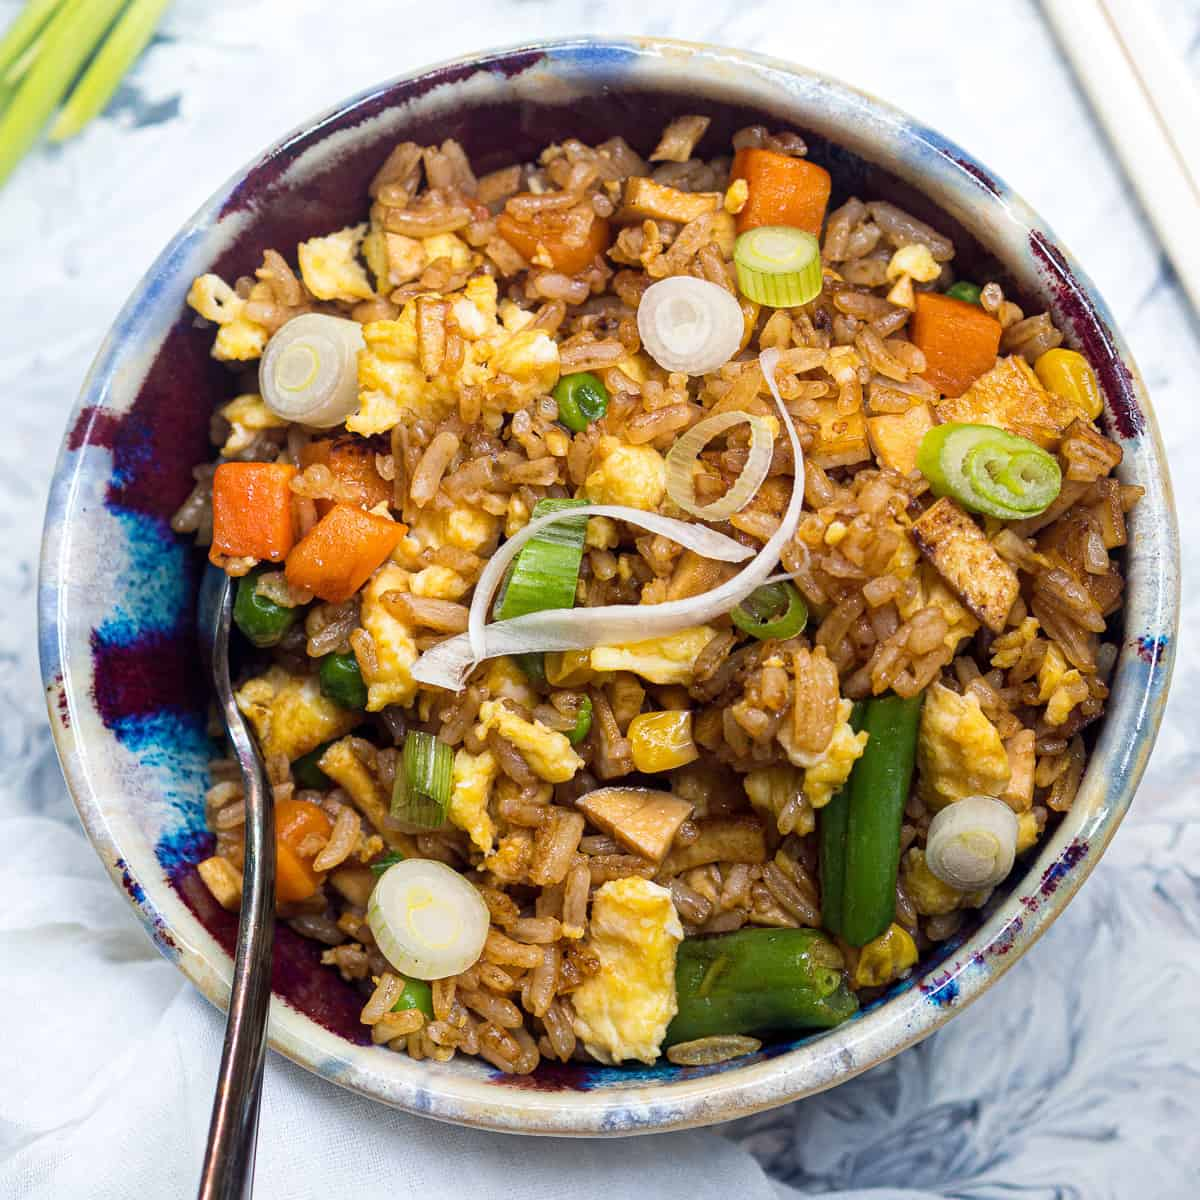 A bowl of fried rice with sliced green onions on top and a spoon in the bowl